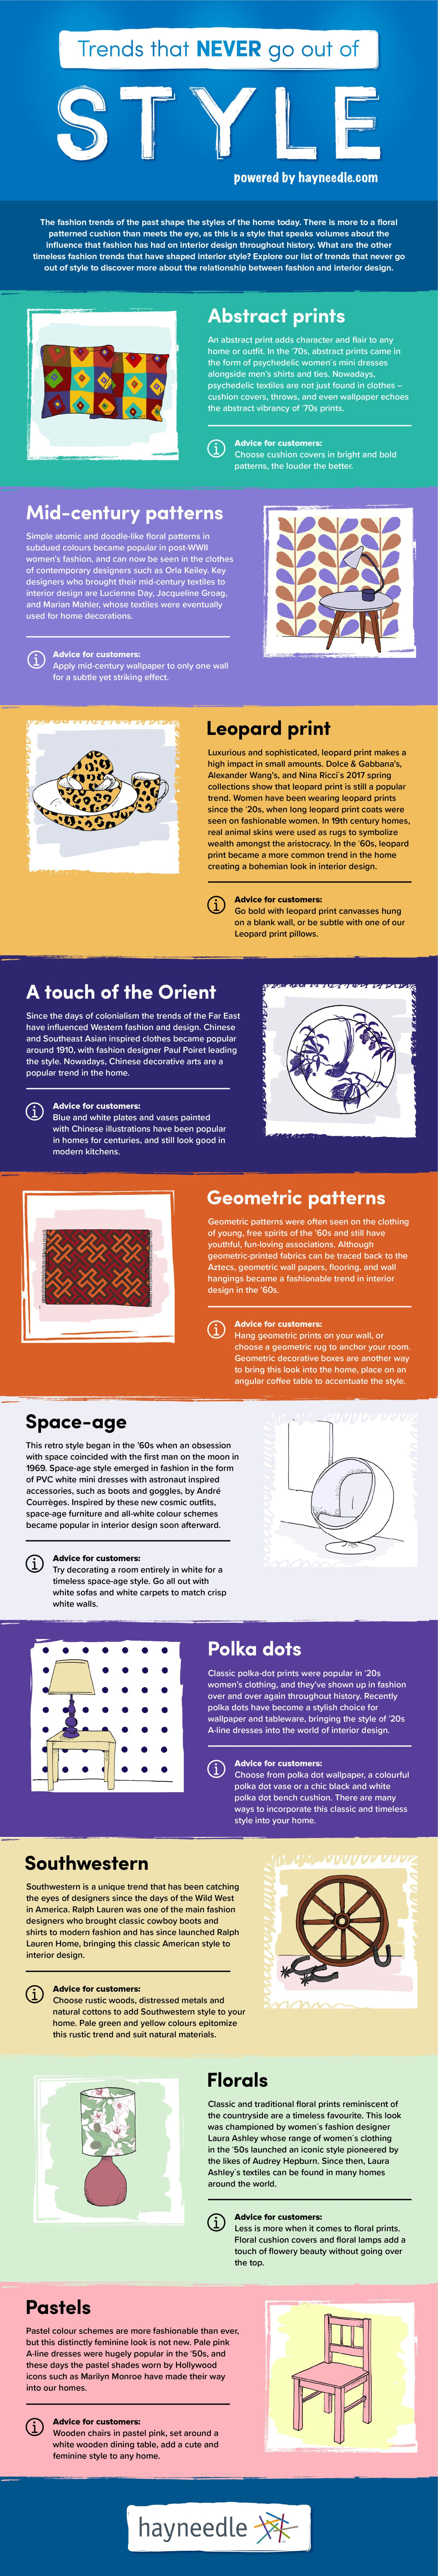 Interior Trends That Never Go Out Of Style   Infographic